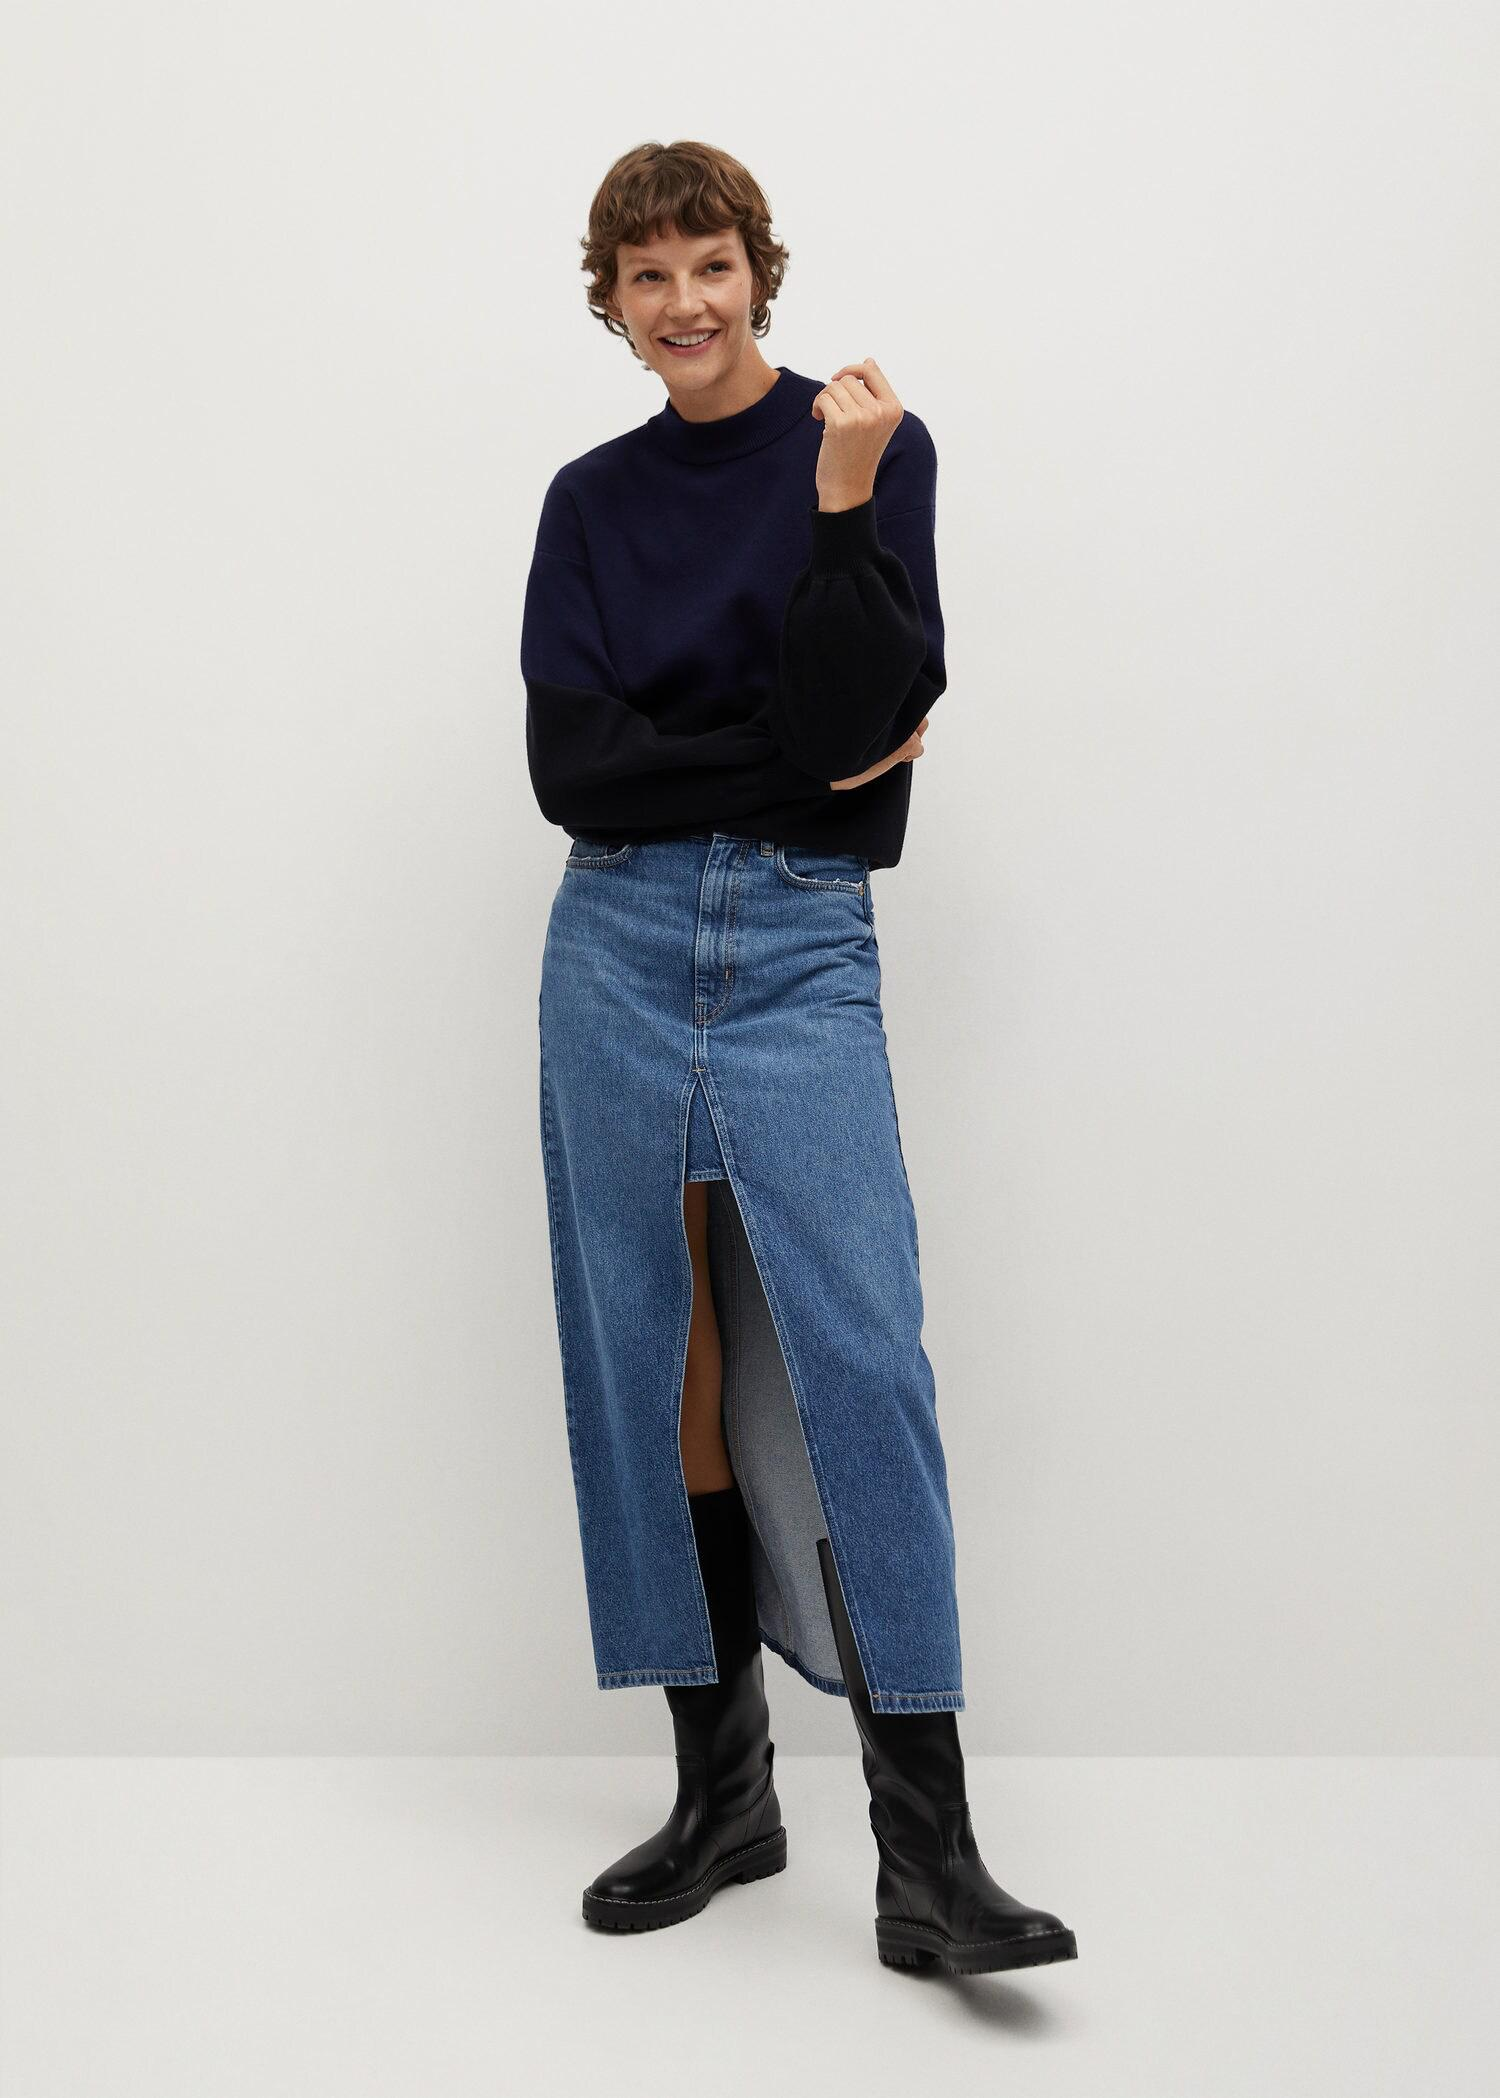 Sweater with puffed sleeves 1